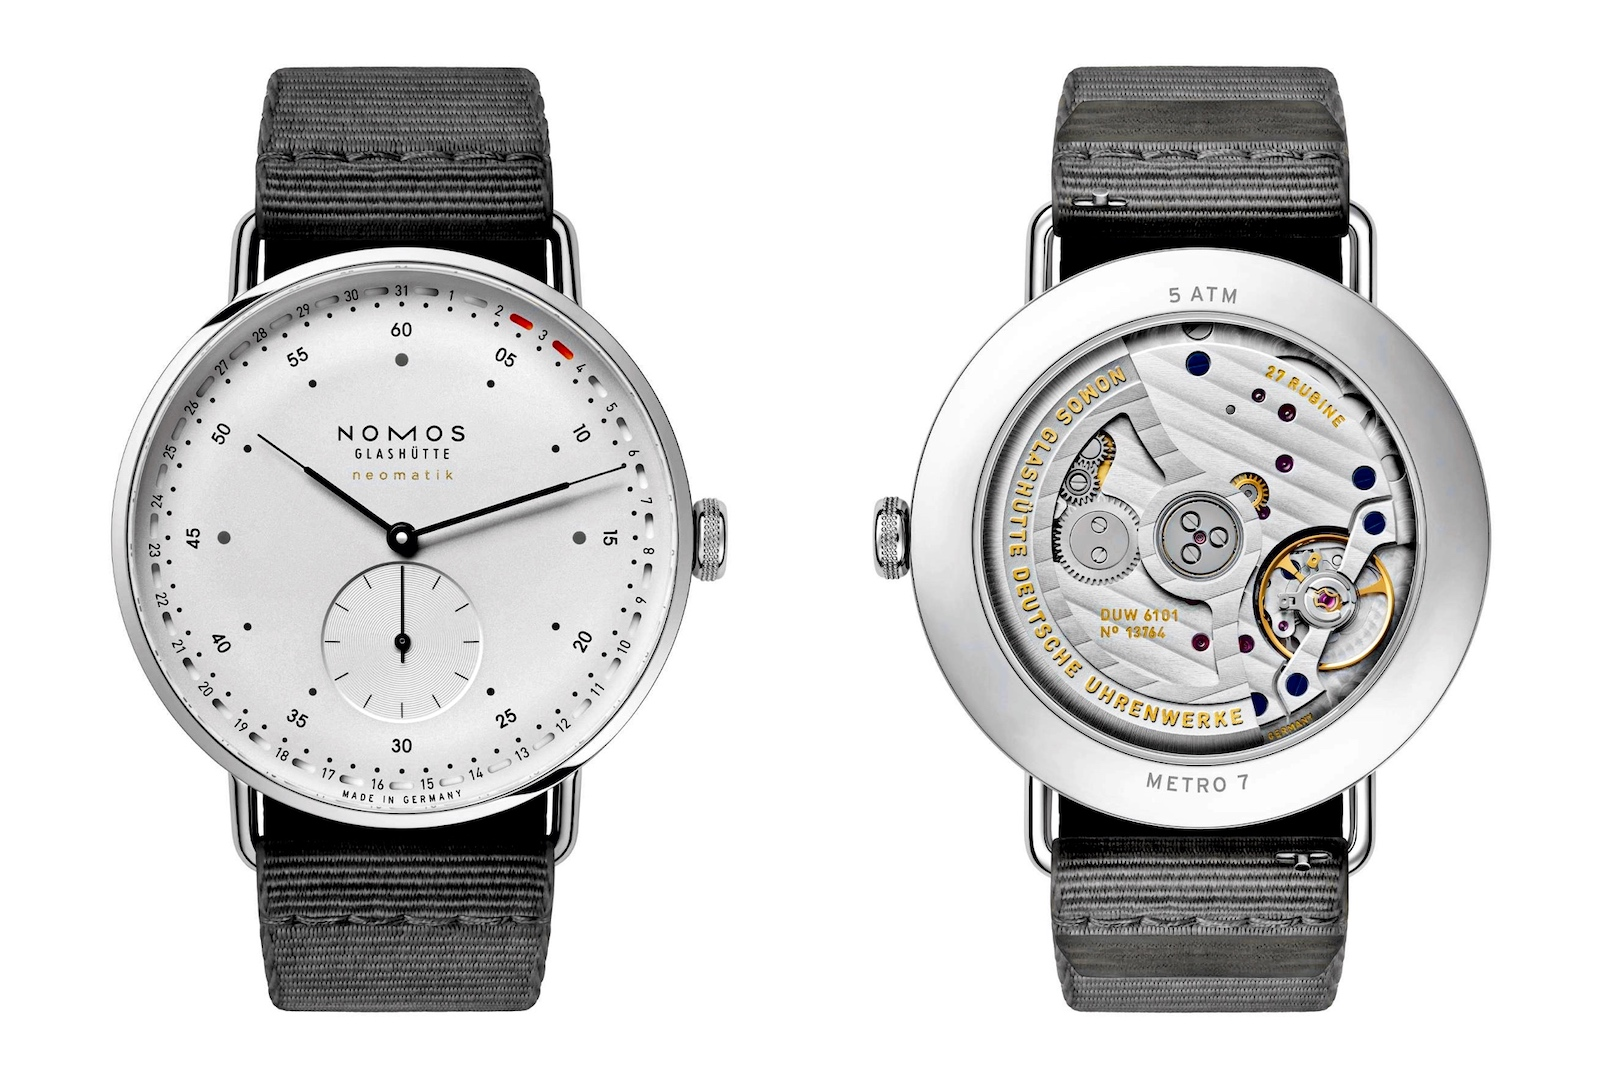 Nomos en Watches and Wonders 2021 - Metro Neomatic 42 Update, front-back